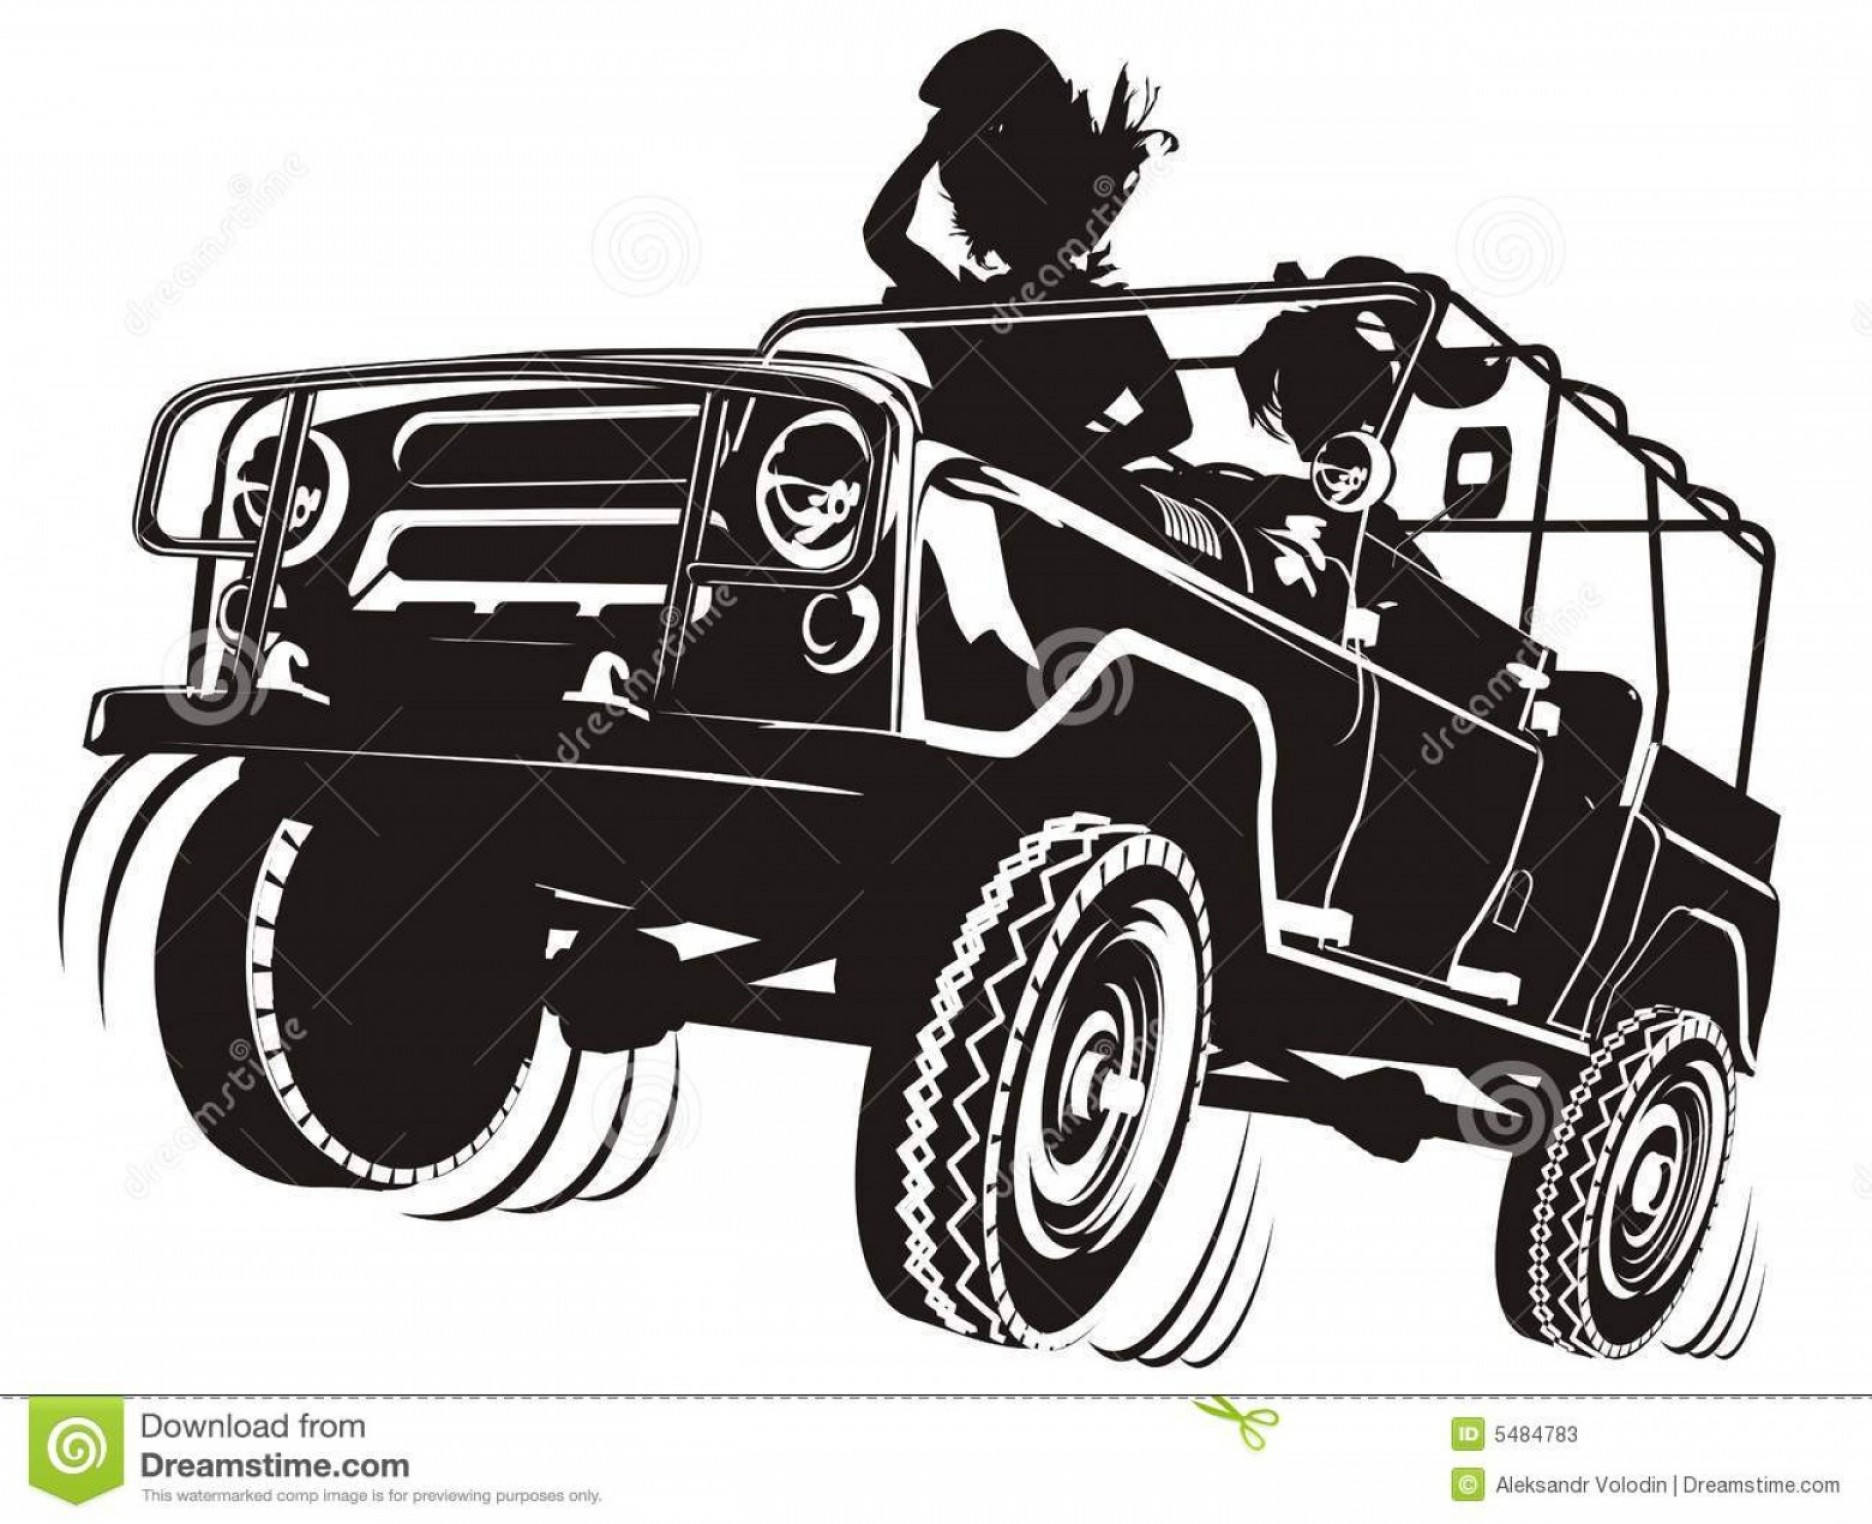 Jeep Tire Vector: Stock Photos Vector Jeep Detailed Silhouette Image